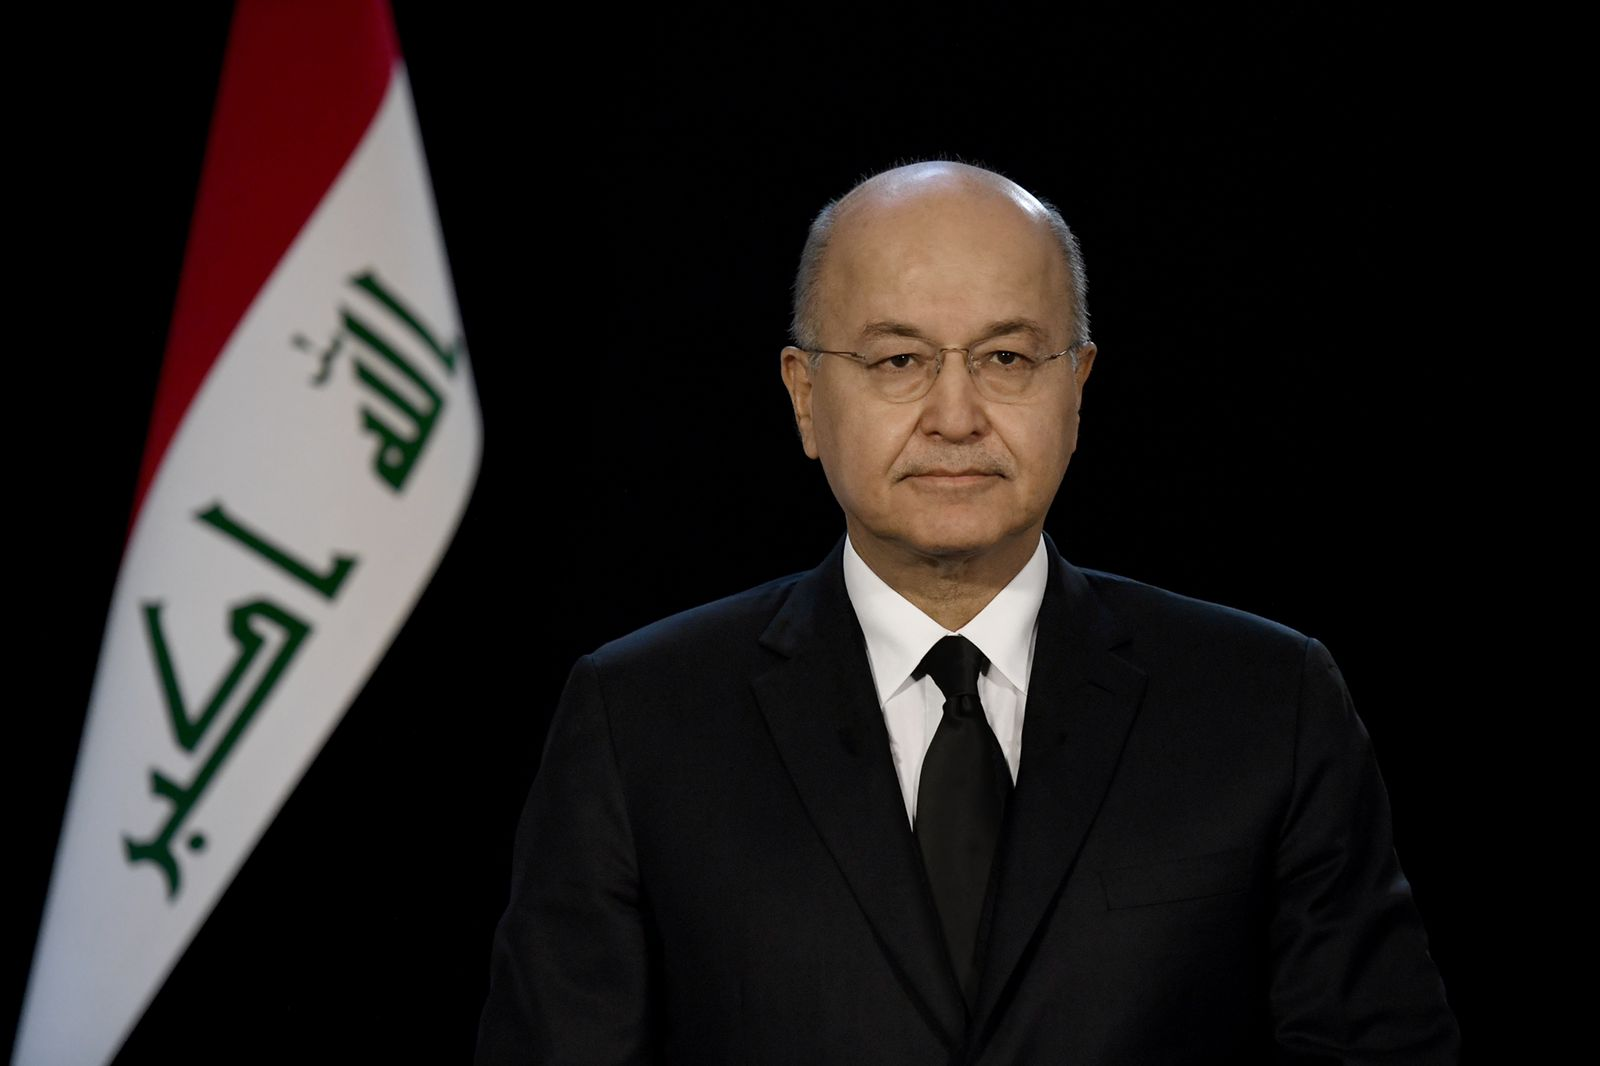 Saleh - Iraq is going through a watershed stage and elections are the peaceful path to change